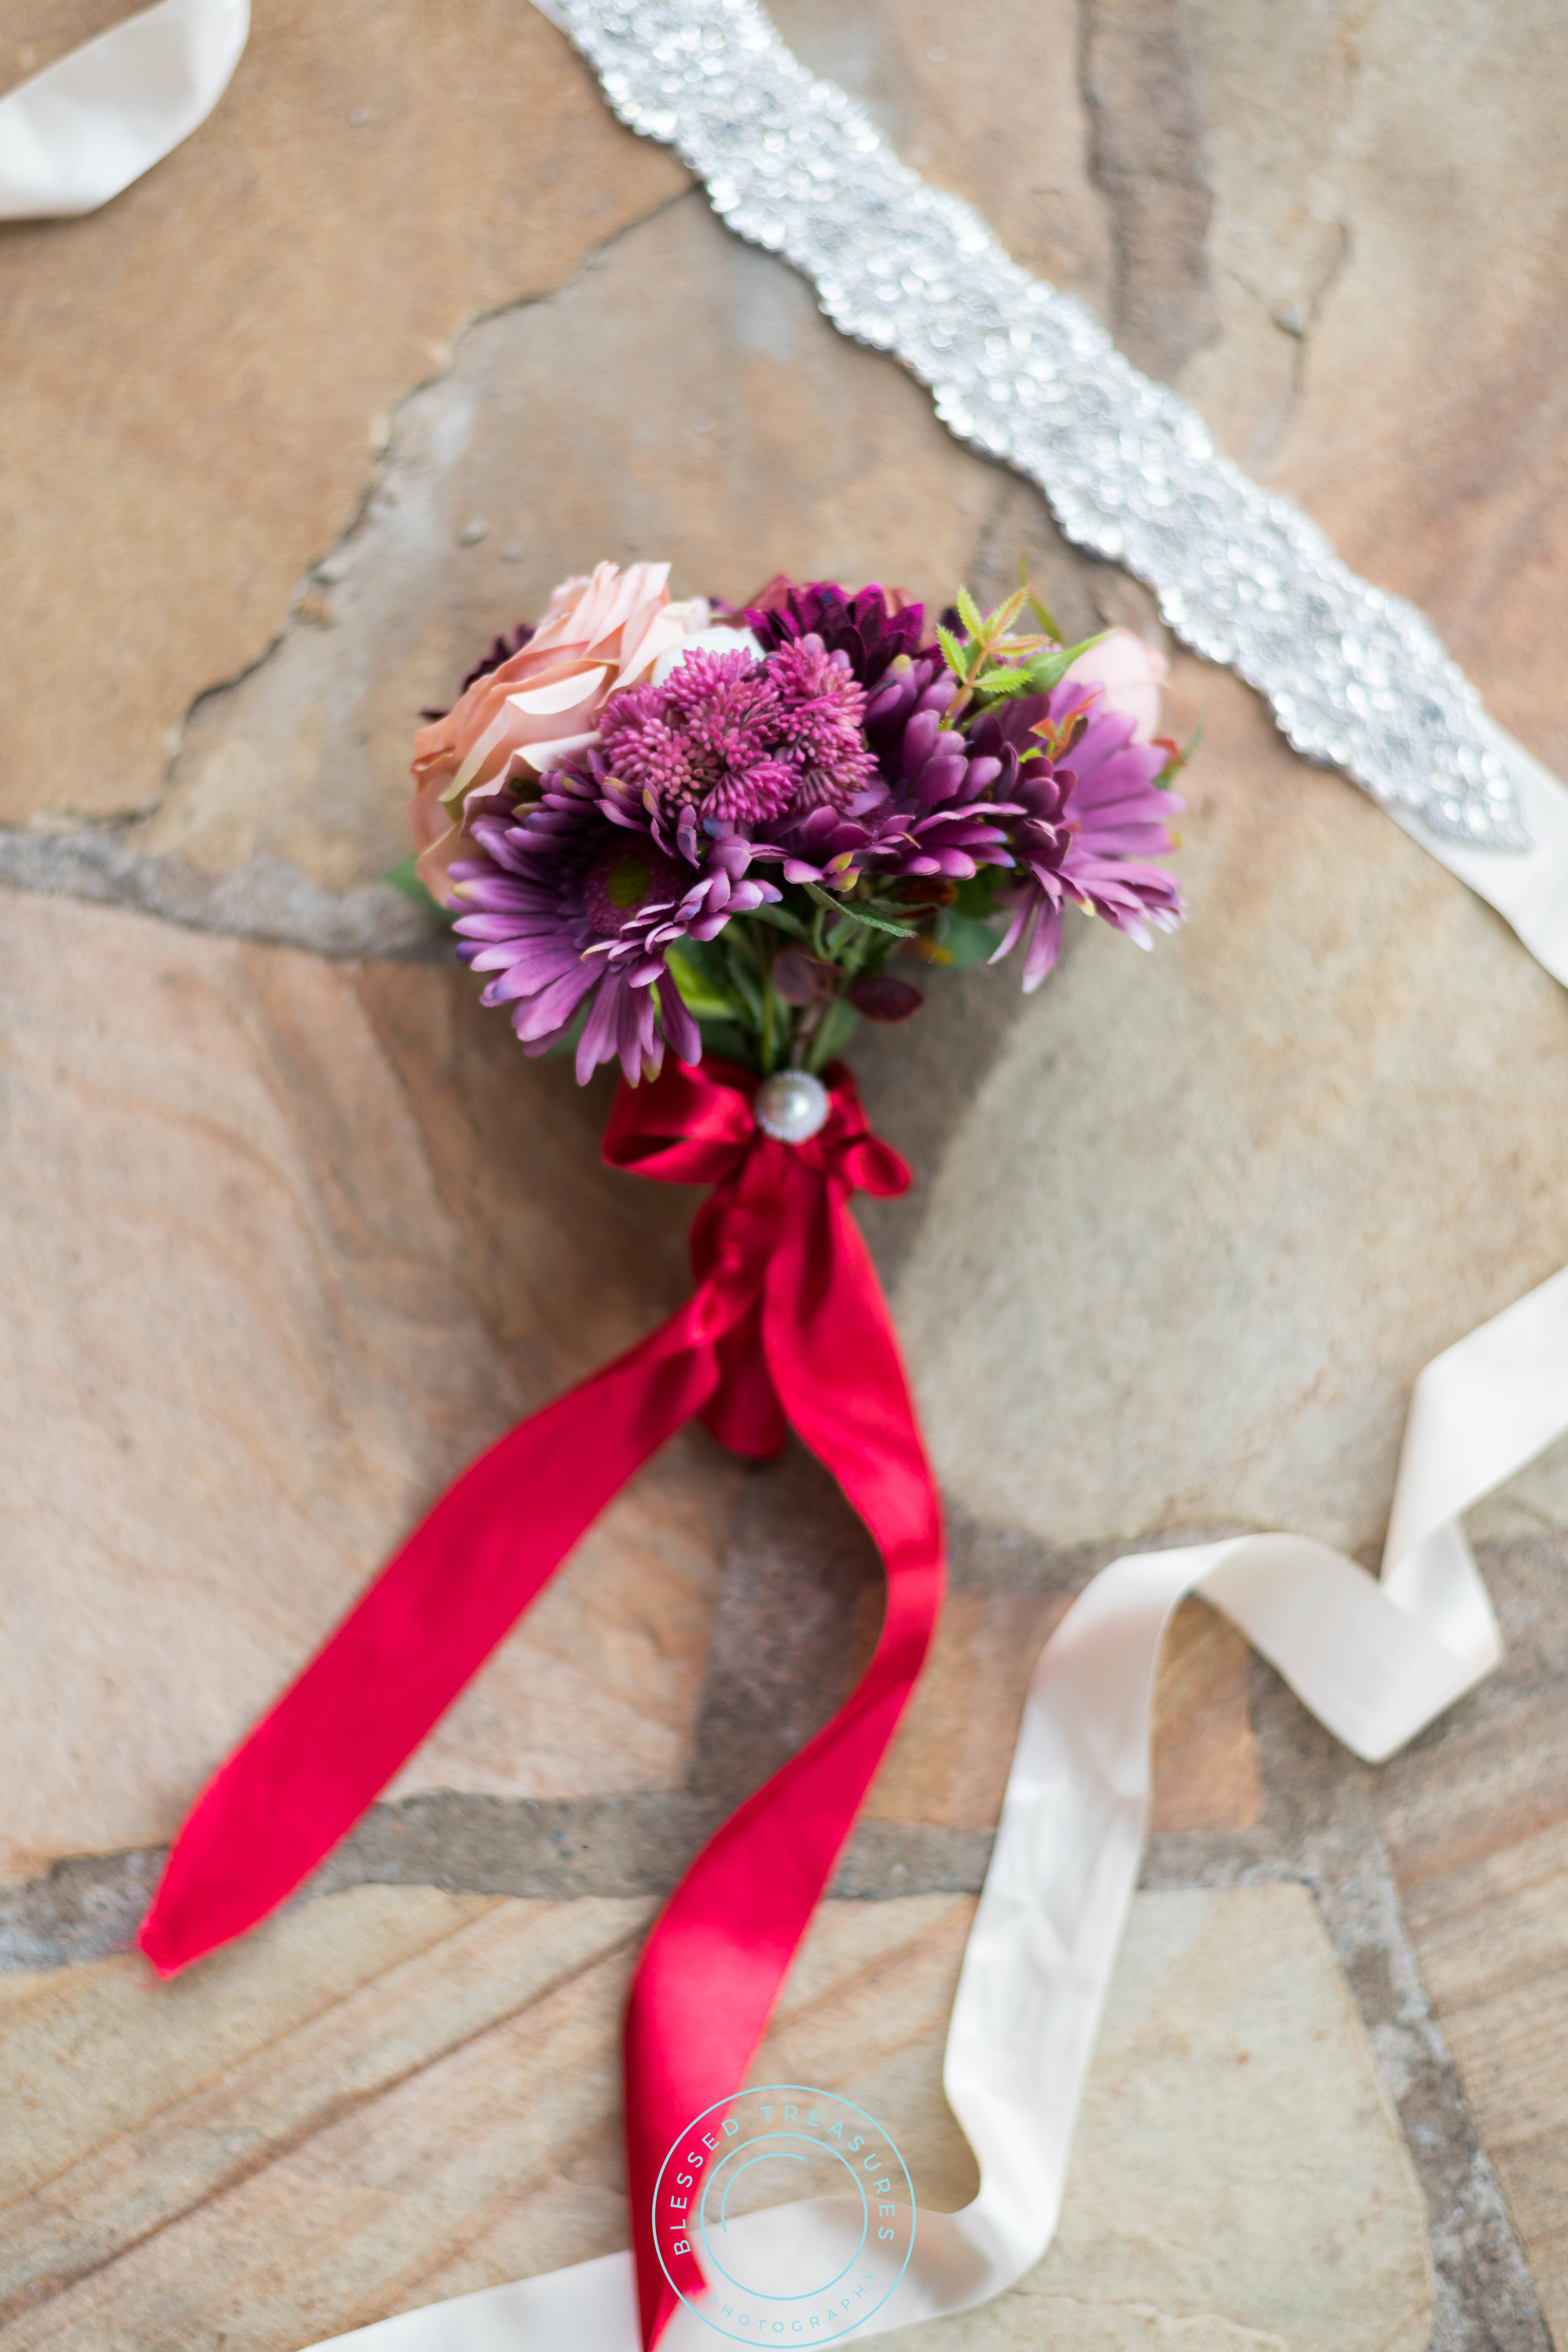 wedding flower bouquet pink roses purple daisies greenery red ribbon tie pearl